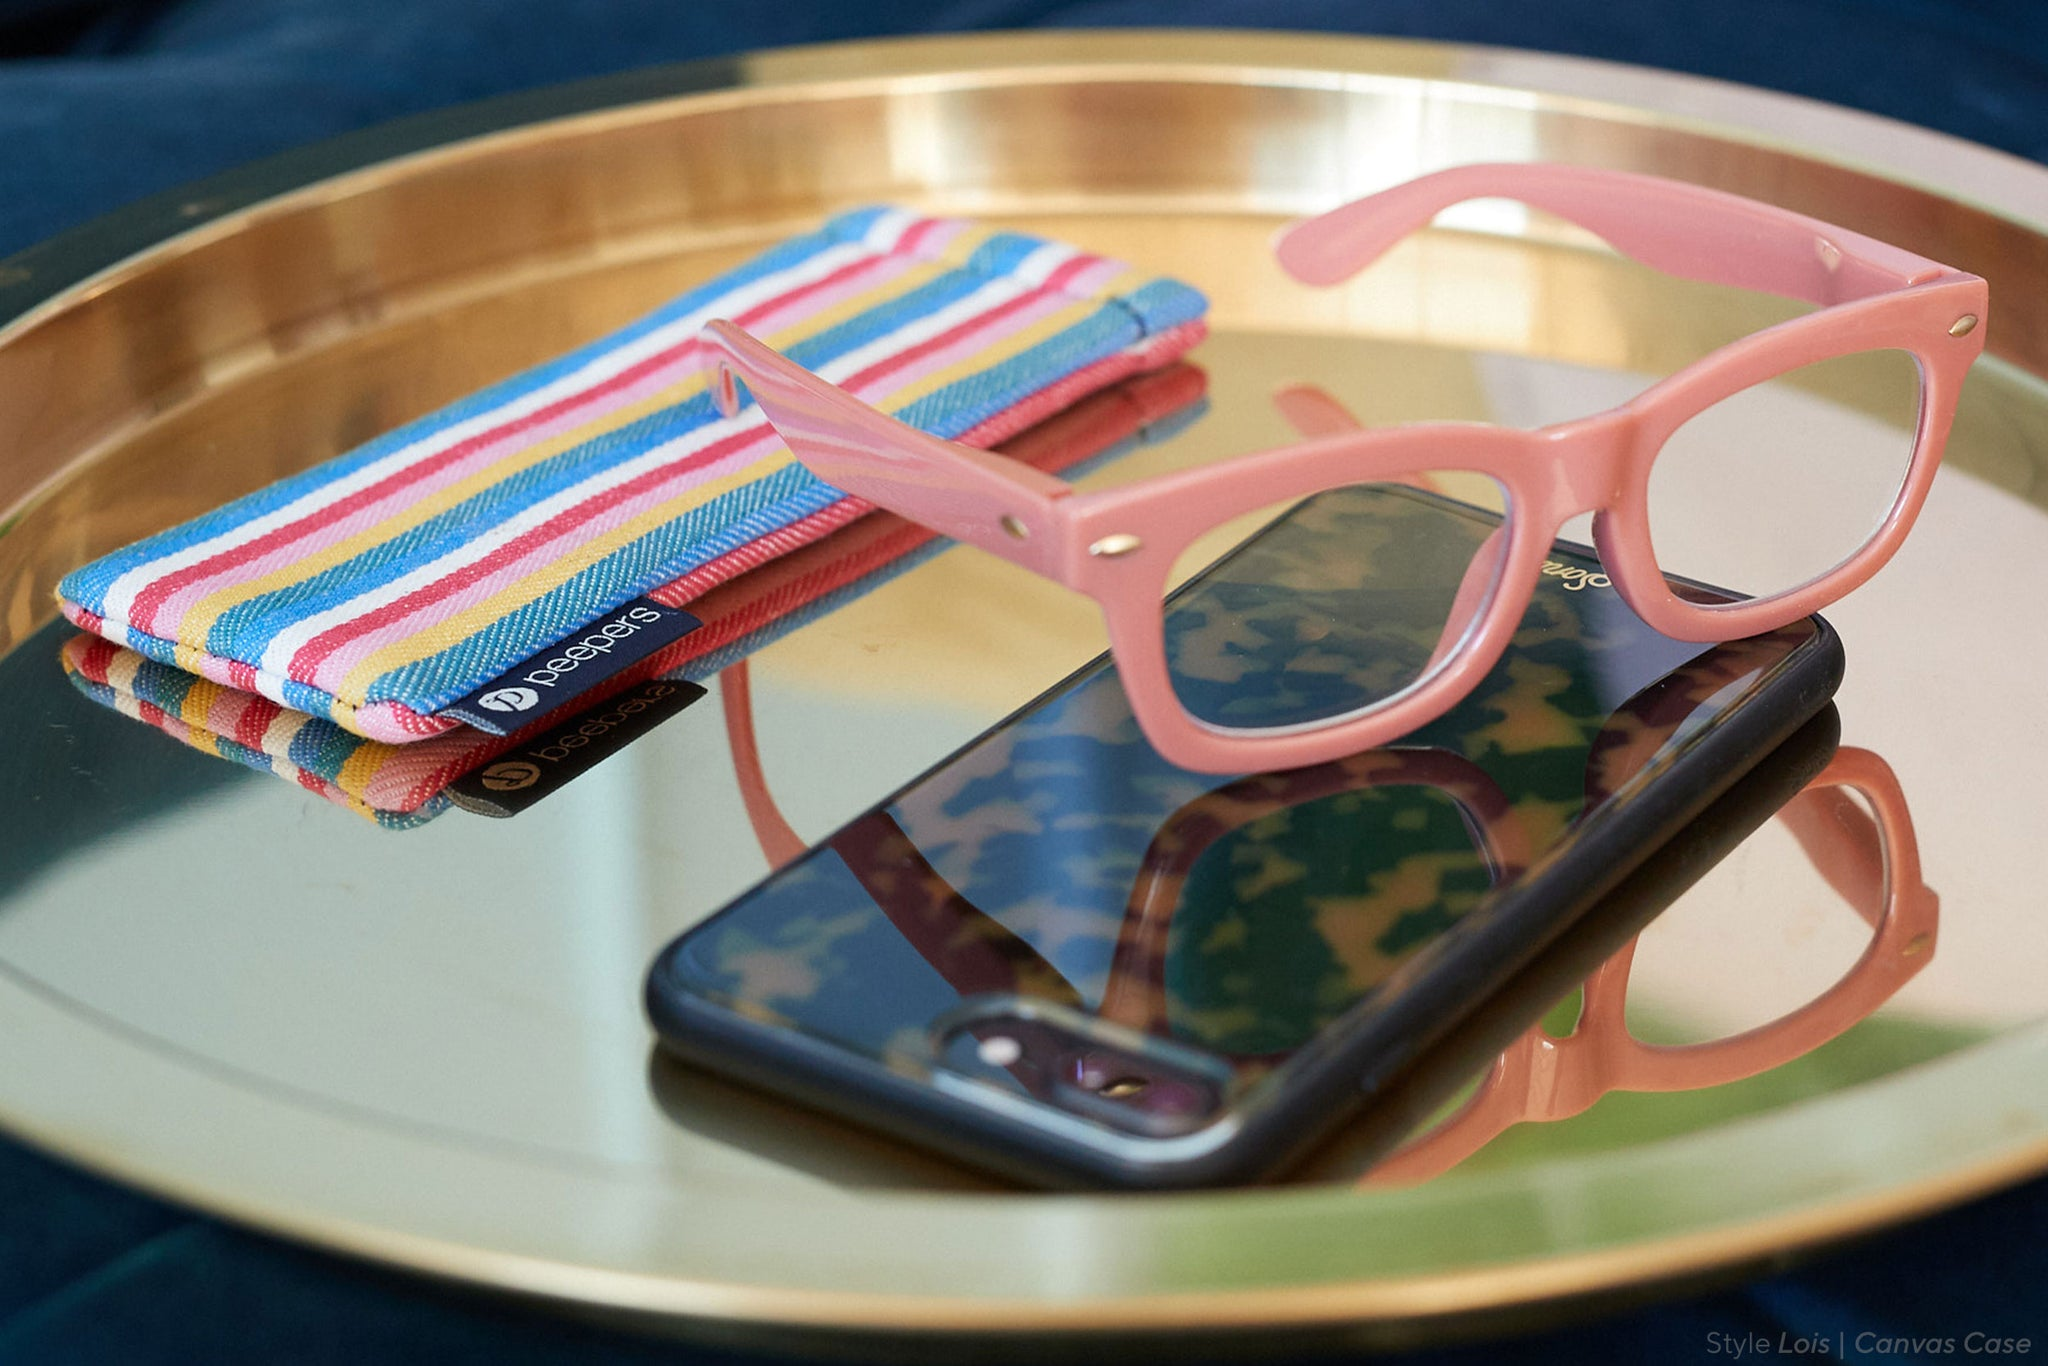 Peepers Lois blue light reading glasses sitting on a smart phone with a striped canvas case